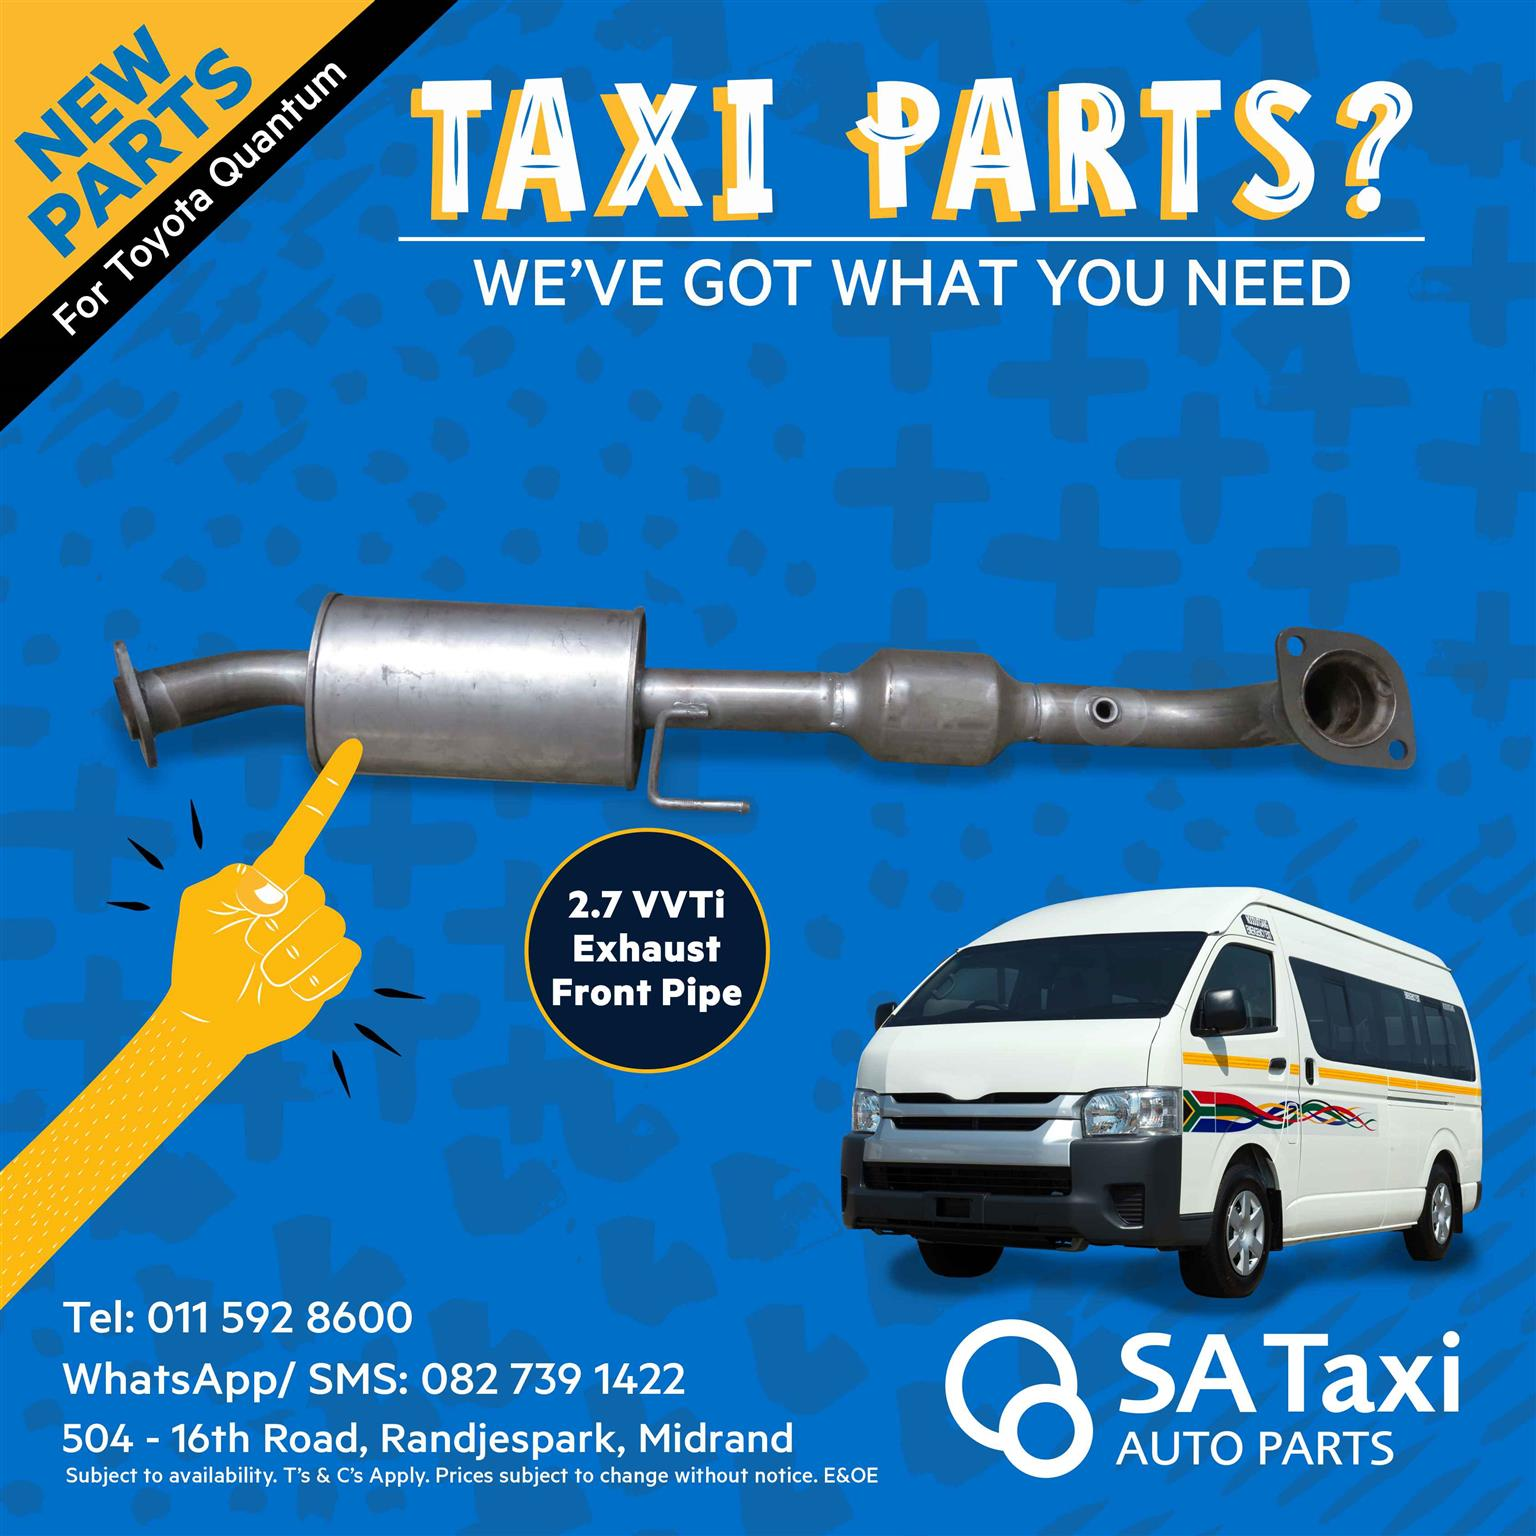 New Exhaust Front Pipe for Toyota Quantum 2.7 VVTi